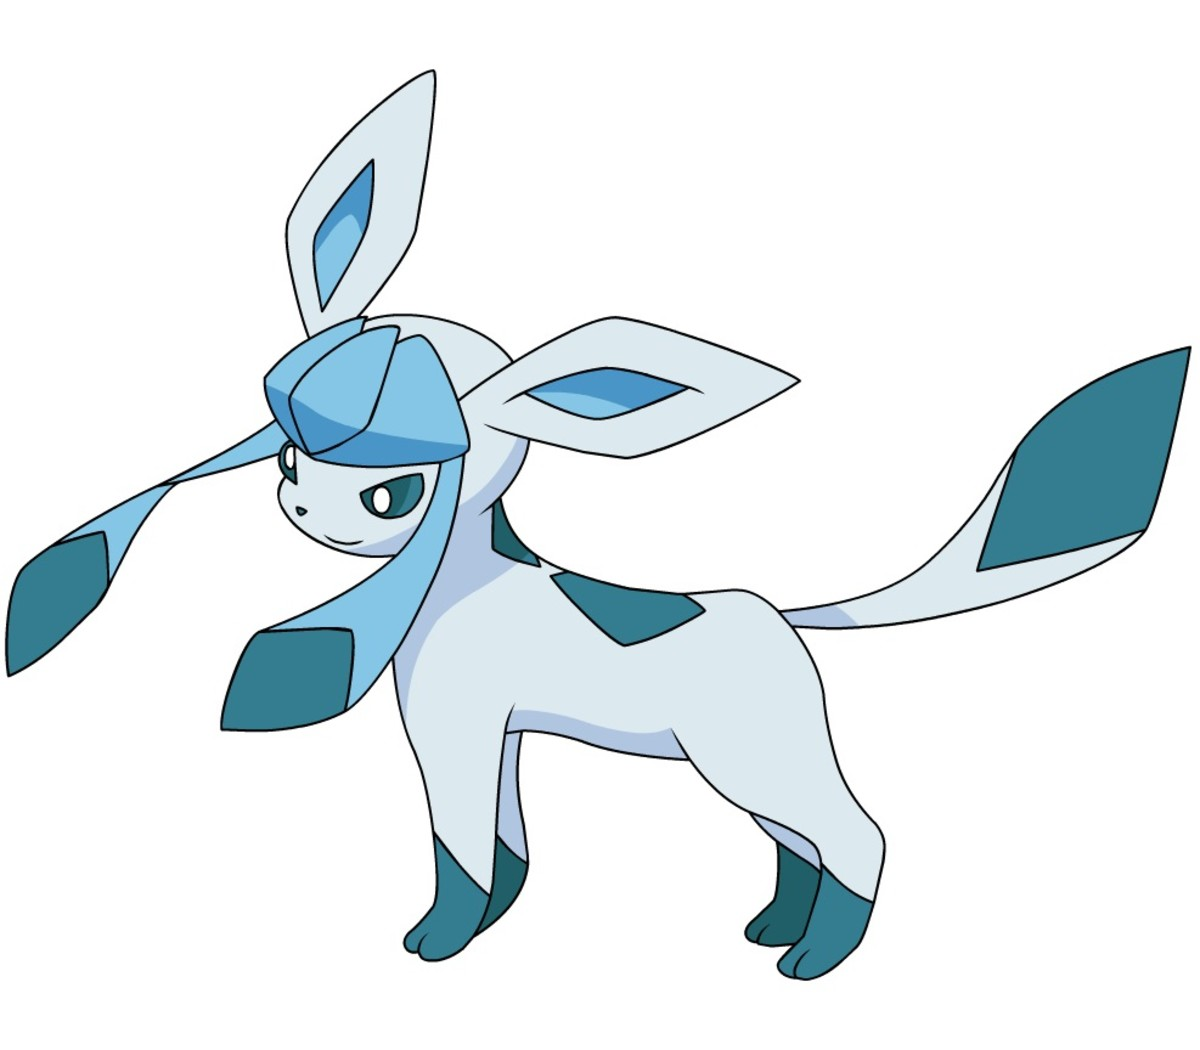 Glaceon is an Ice-type Eeveelution!